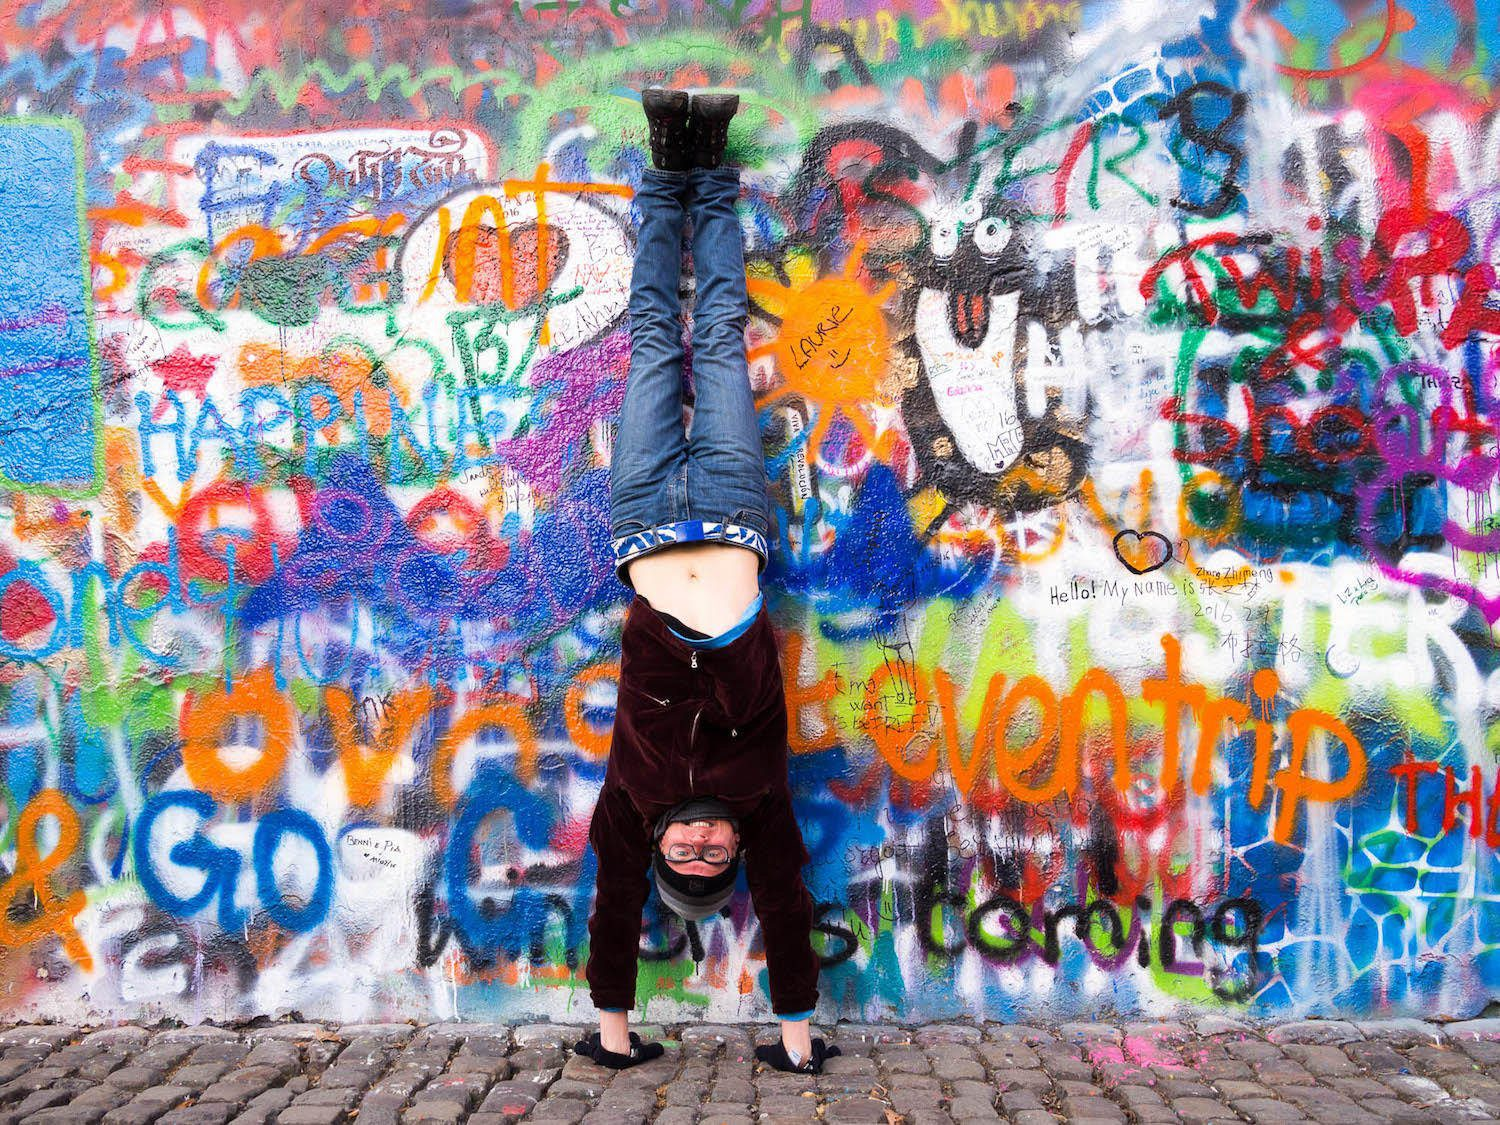 Handstand in front of a famous graffiti wall in Prague.